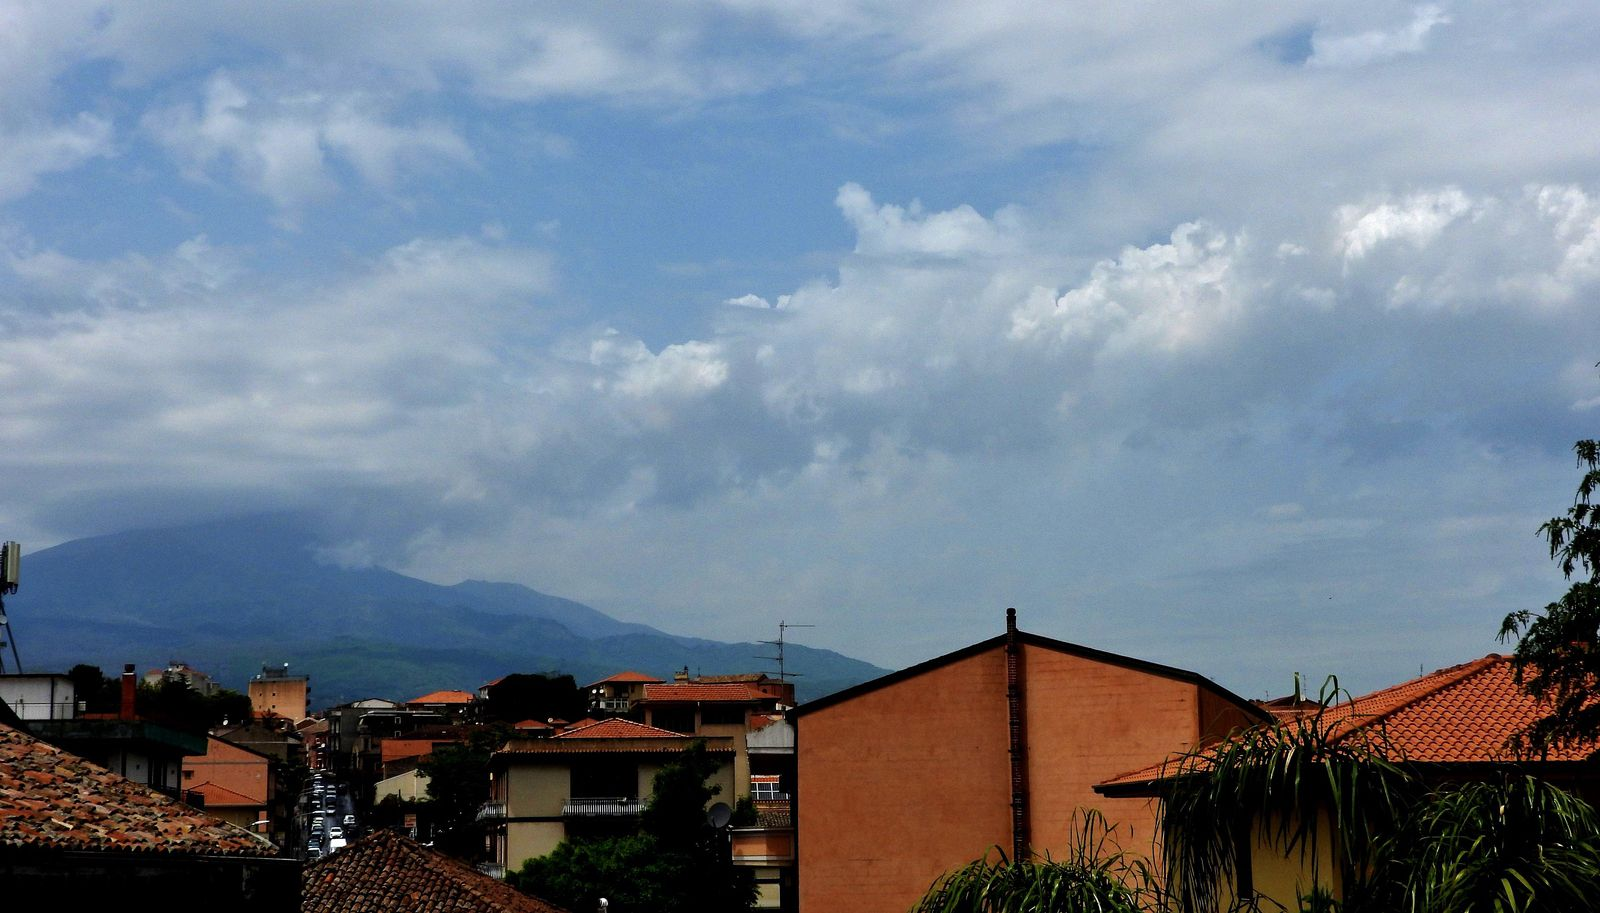 Etna - 05.27.2021 - summit activity remains obscured by cloud cover; the ash cloud exceeds this one and testifies to the strong strombolian activity - photo INGV